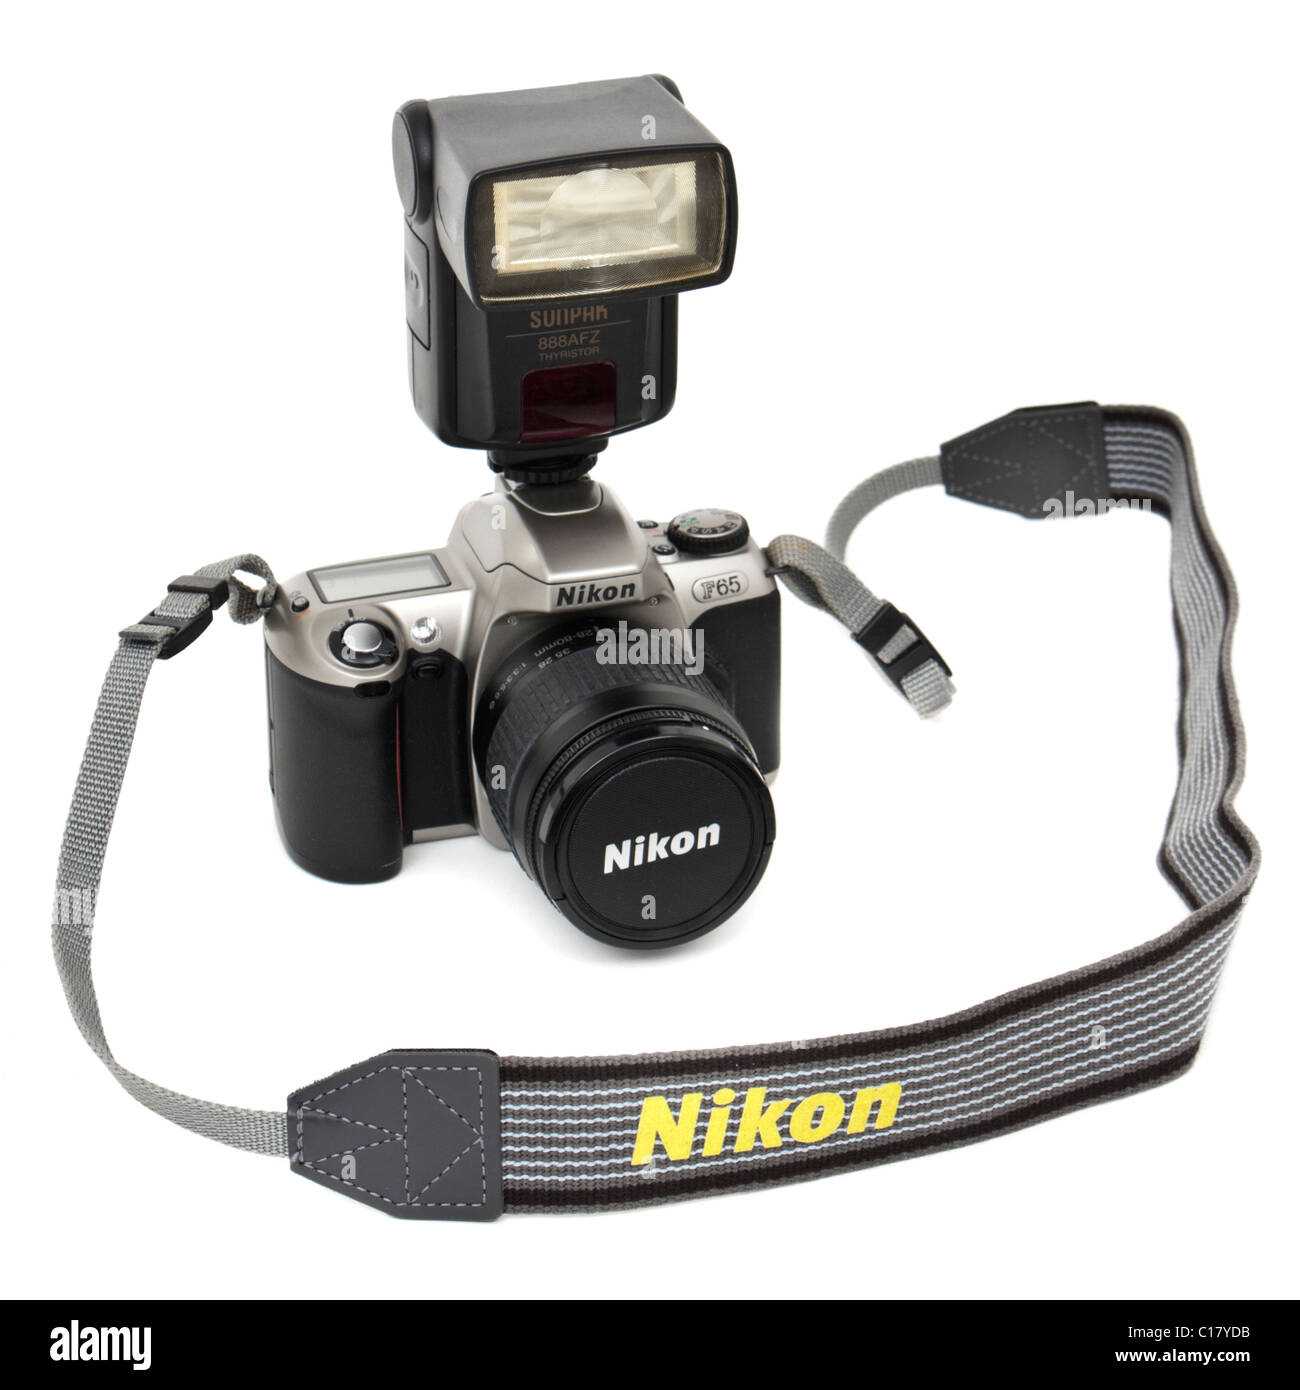 Nikon F65 35mm SLR film camera with Sunpak 888AFZ Thyristor Flashgun - Stock Image